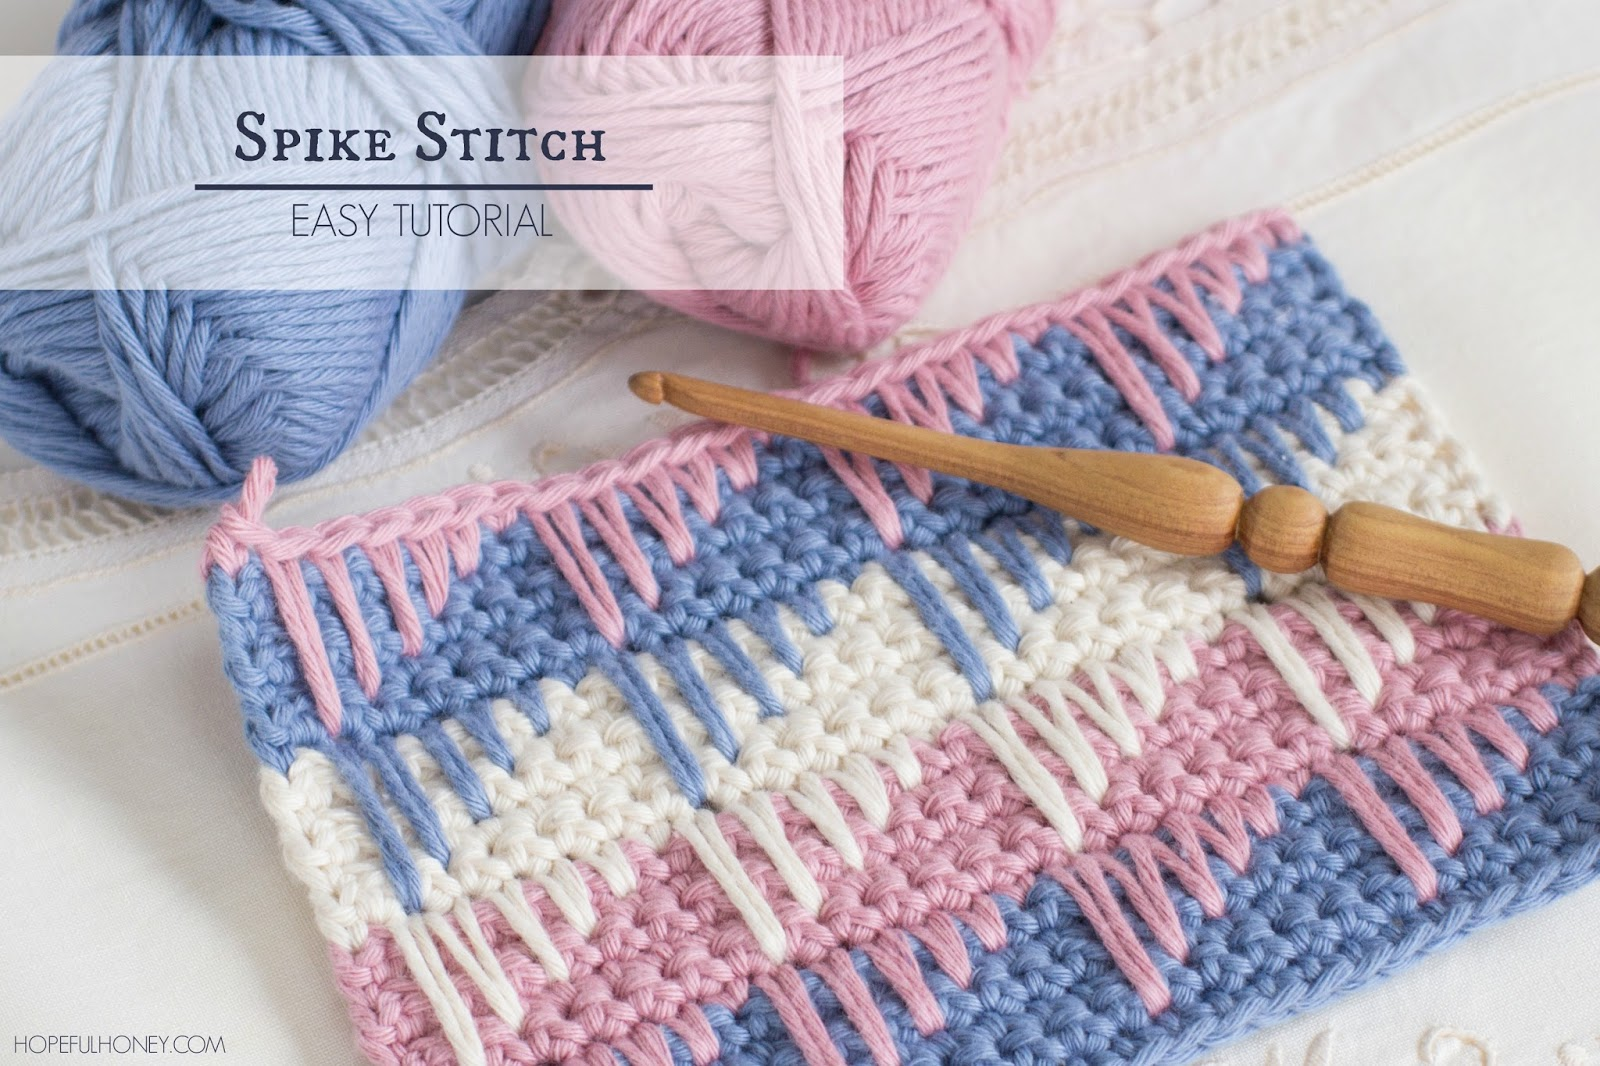 Crocheting Tutorials : ... , Crochet, Create: How To: Crochet The Spike Stitch - Easy Tutorial